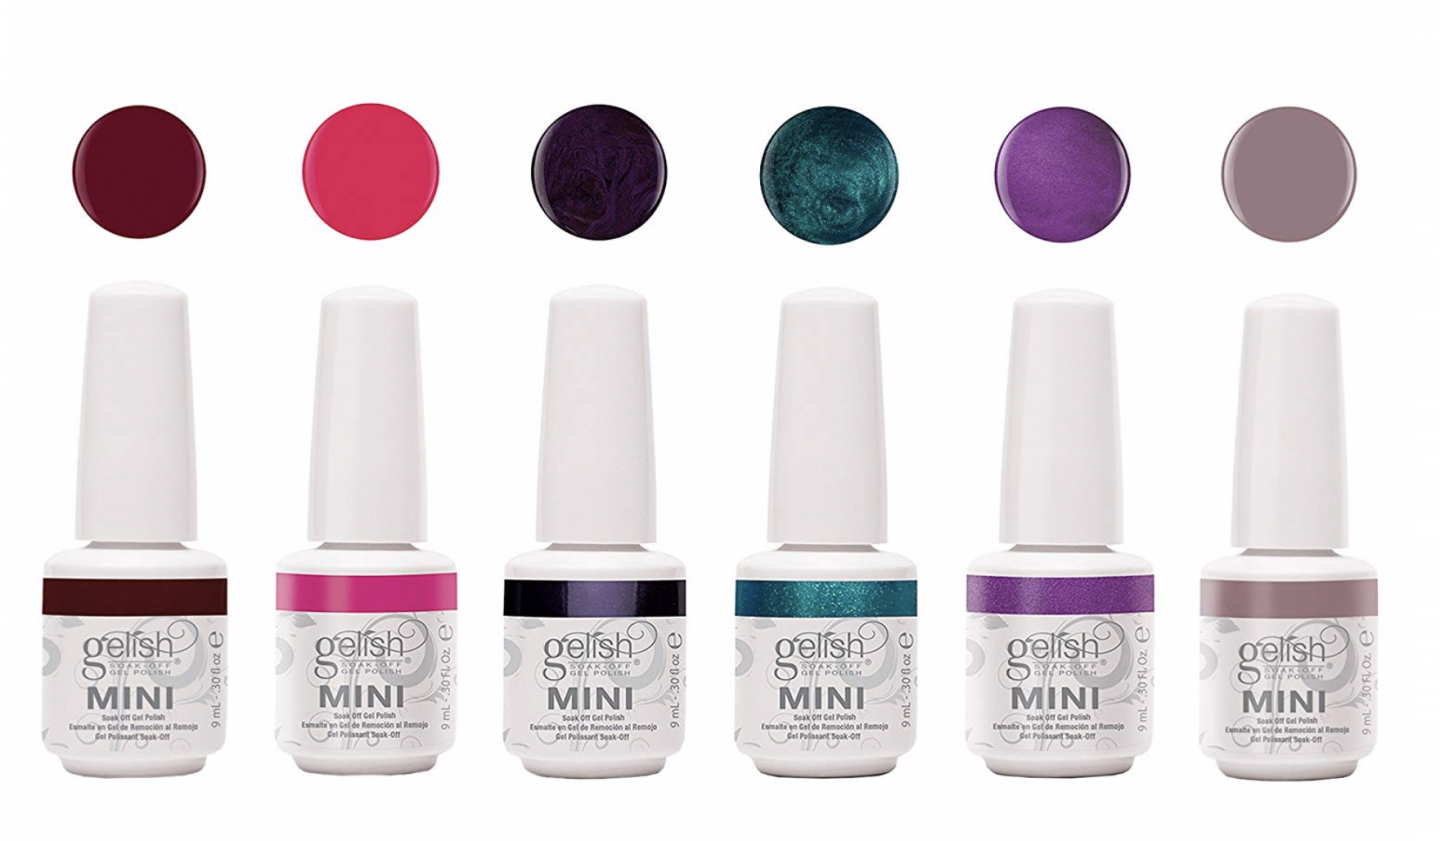 gel mani nail polish mini set Gelish